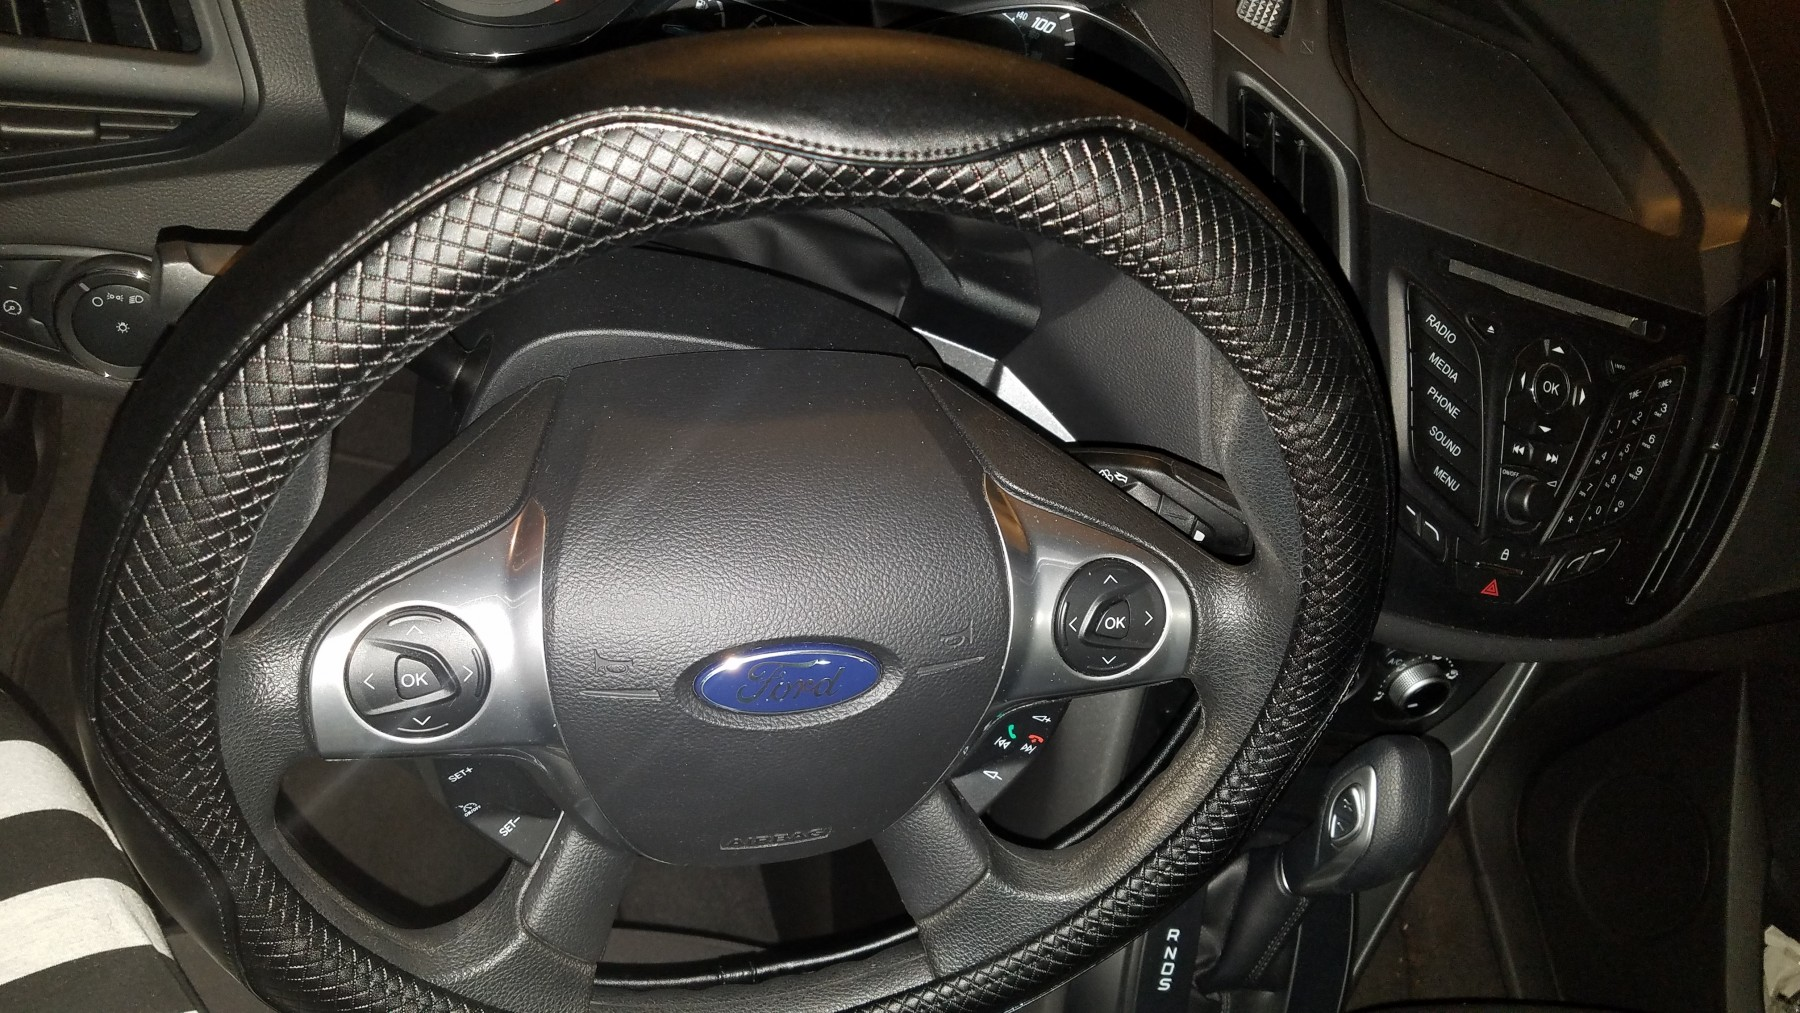 New steering wheel cover for our Ford Escape